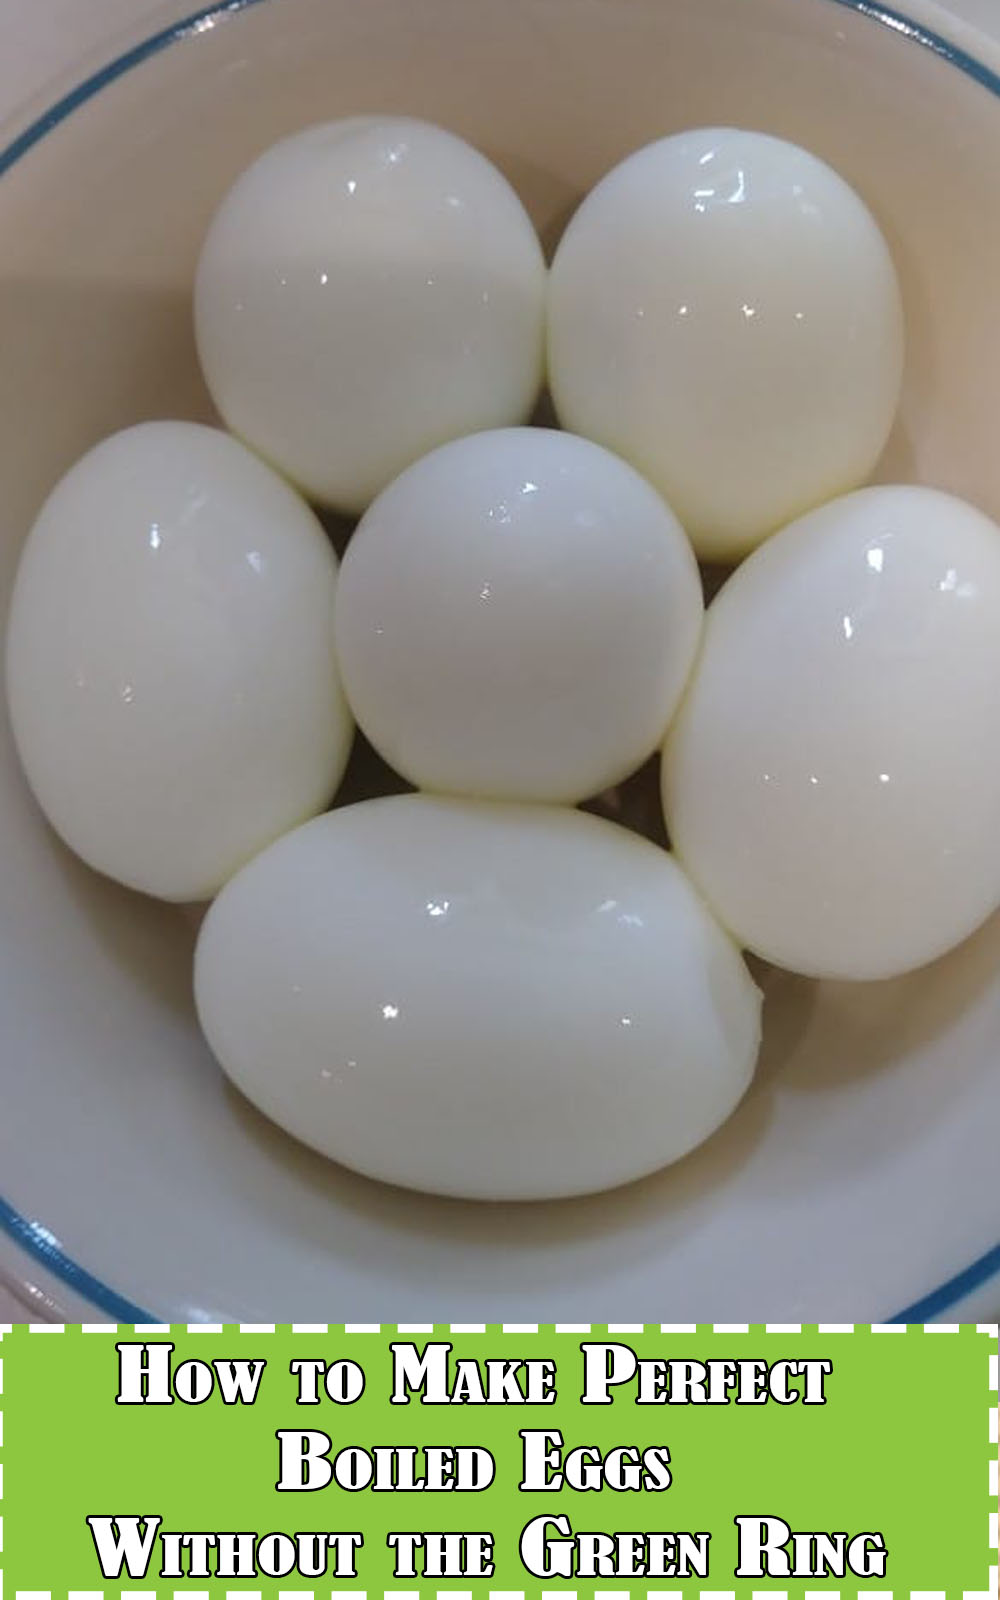 How to Make Perfect Boiled Eggs Without the Green Ring